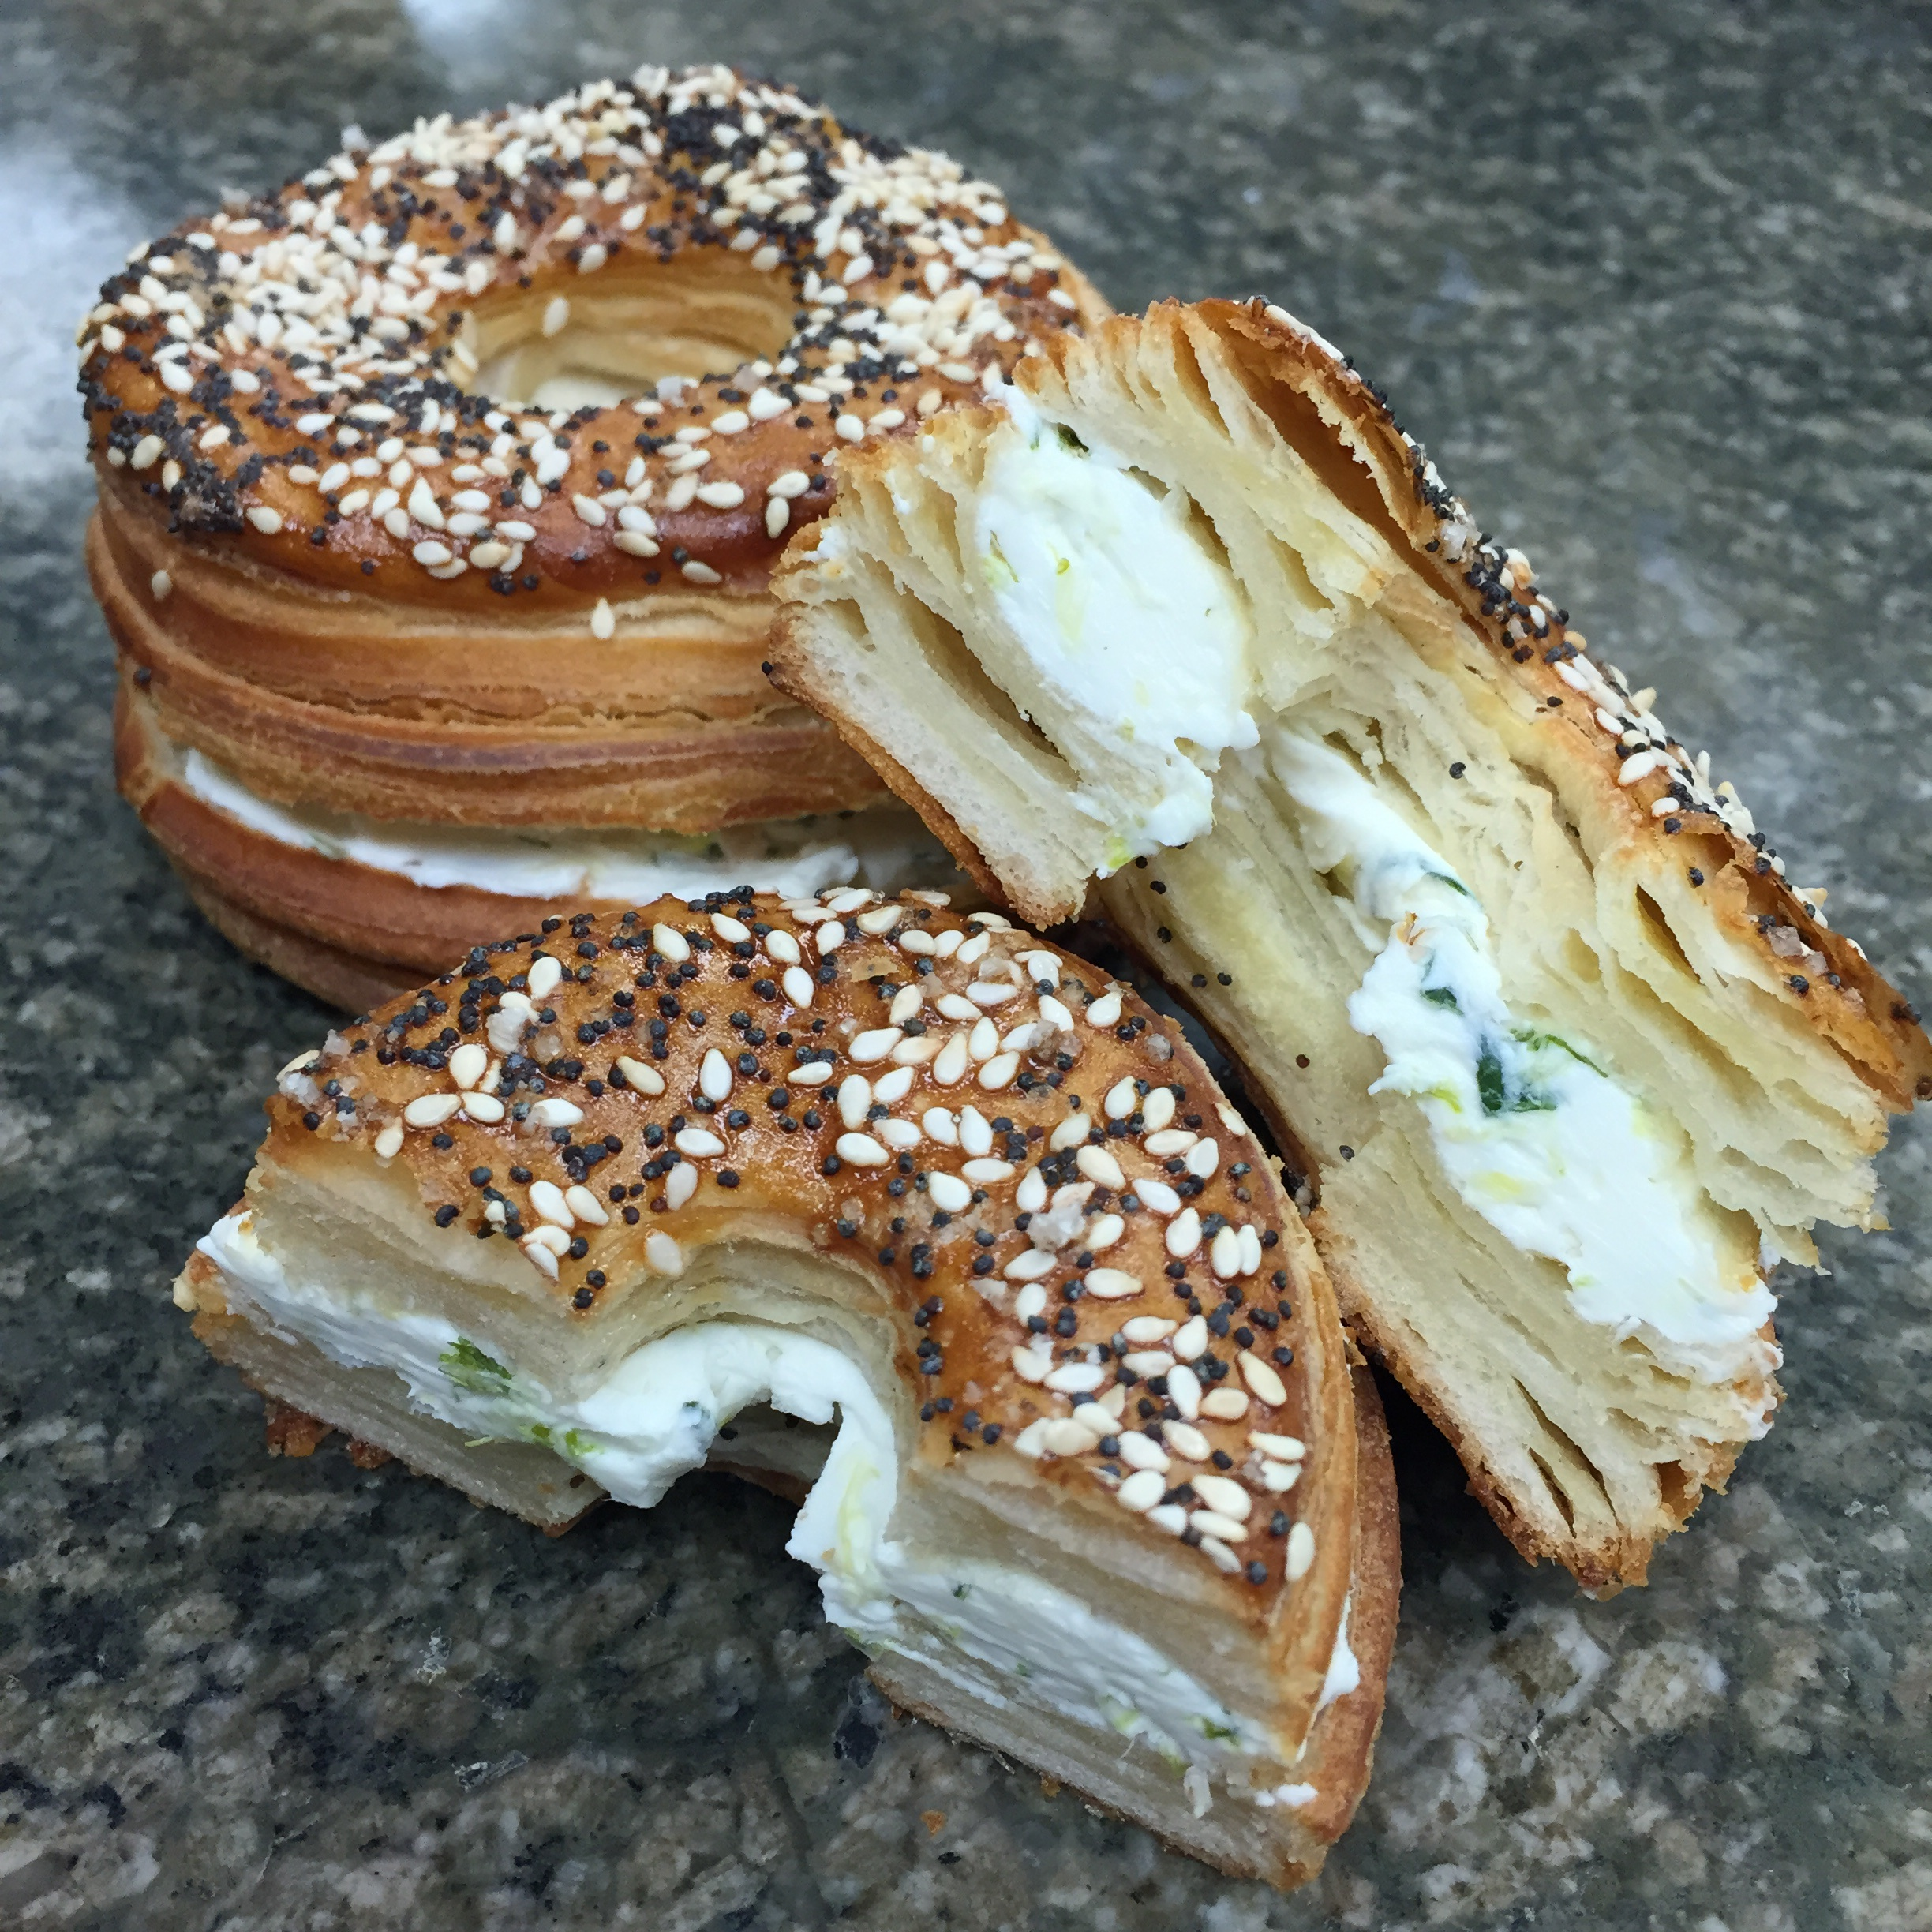 FRENAGEL ( tm) The French Croissant Bagel.  Created and sold exclusively here at fiorello dolce. Flavors include  Scallion Cream Cheese with Fleur de Sel, Poppy and Sesame seeds. Maple Walnut with Cinnamon Raisin Cream Cheese. Black Sesame seeds, Fleur de Sel and Vegetable Cream Cheese.